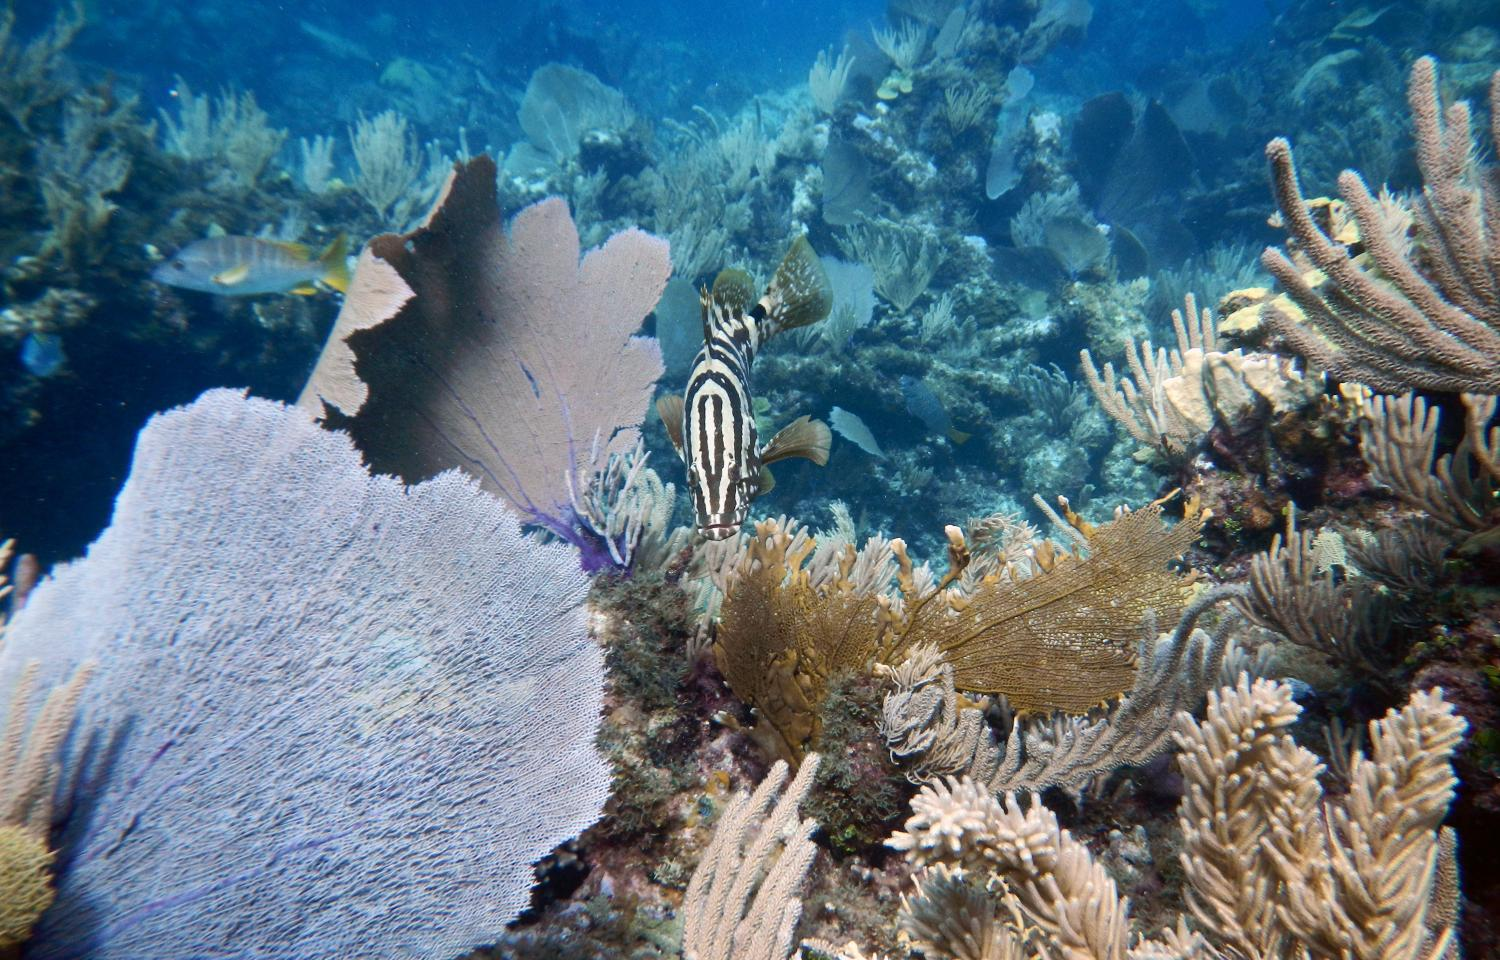 Big fish—and their pee—are key parts of coral reef ecosystems